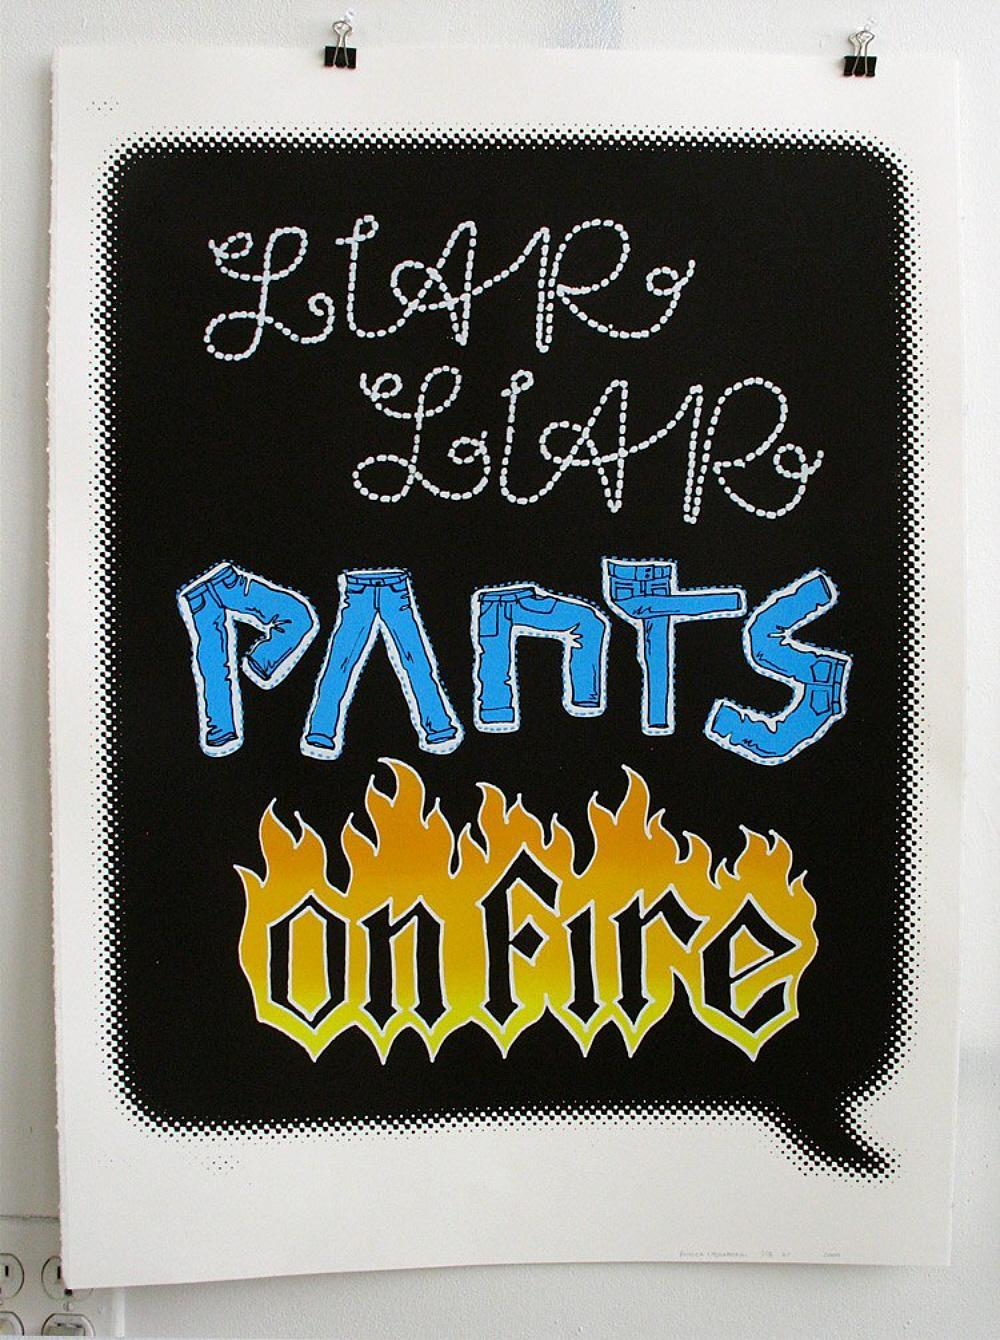 01 liar liar pants on fire